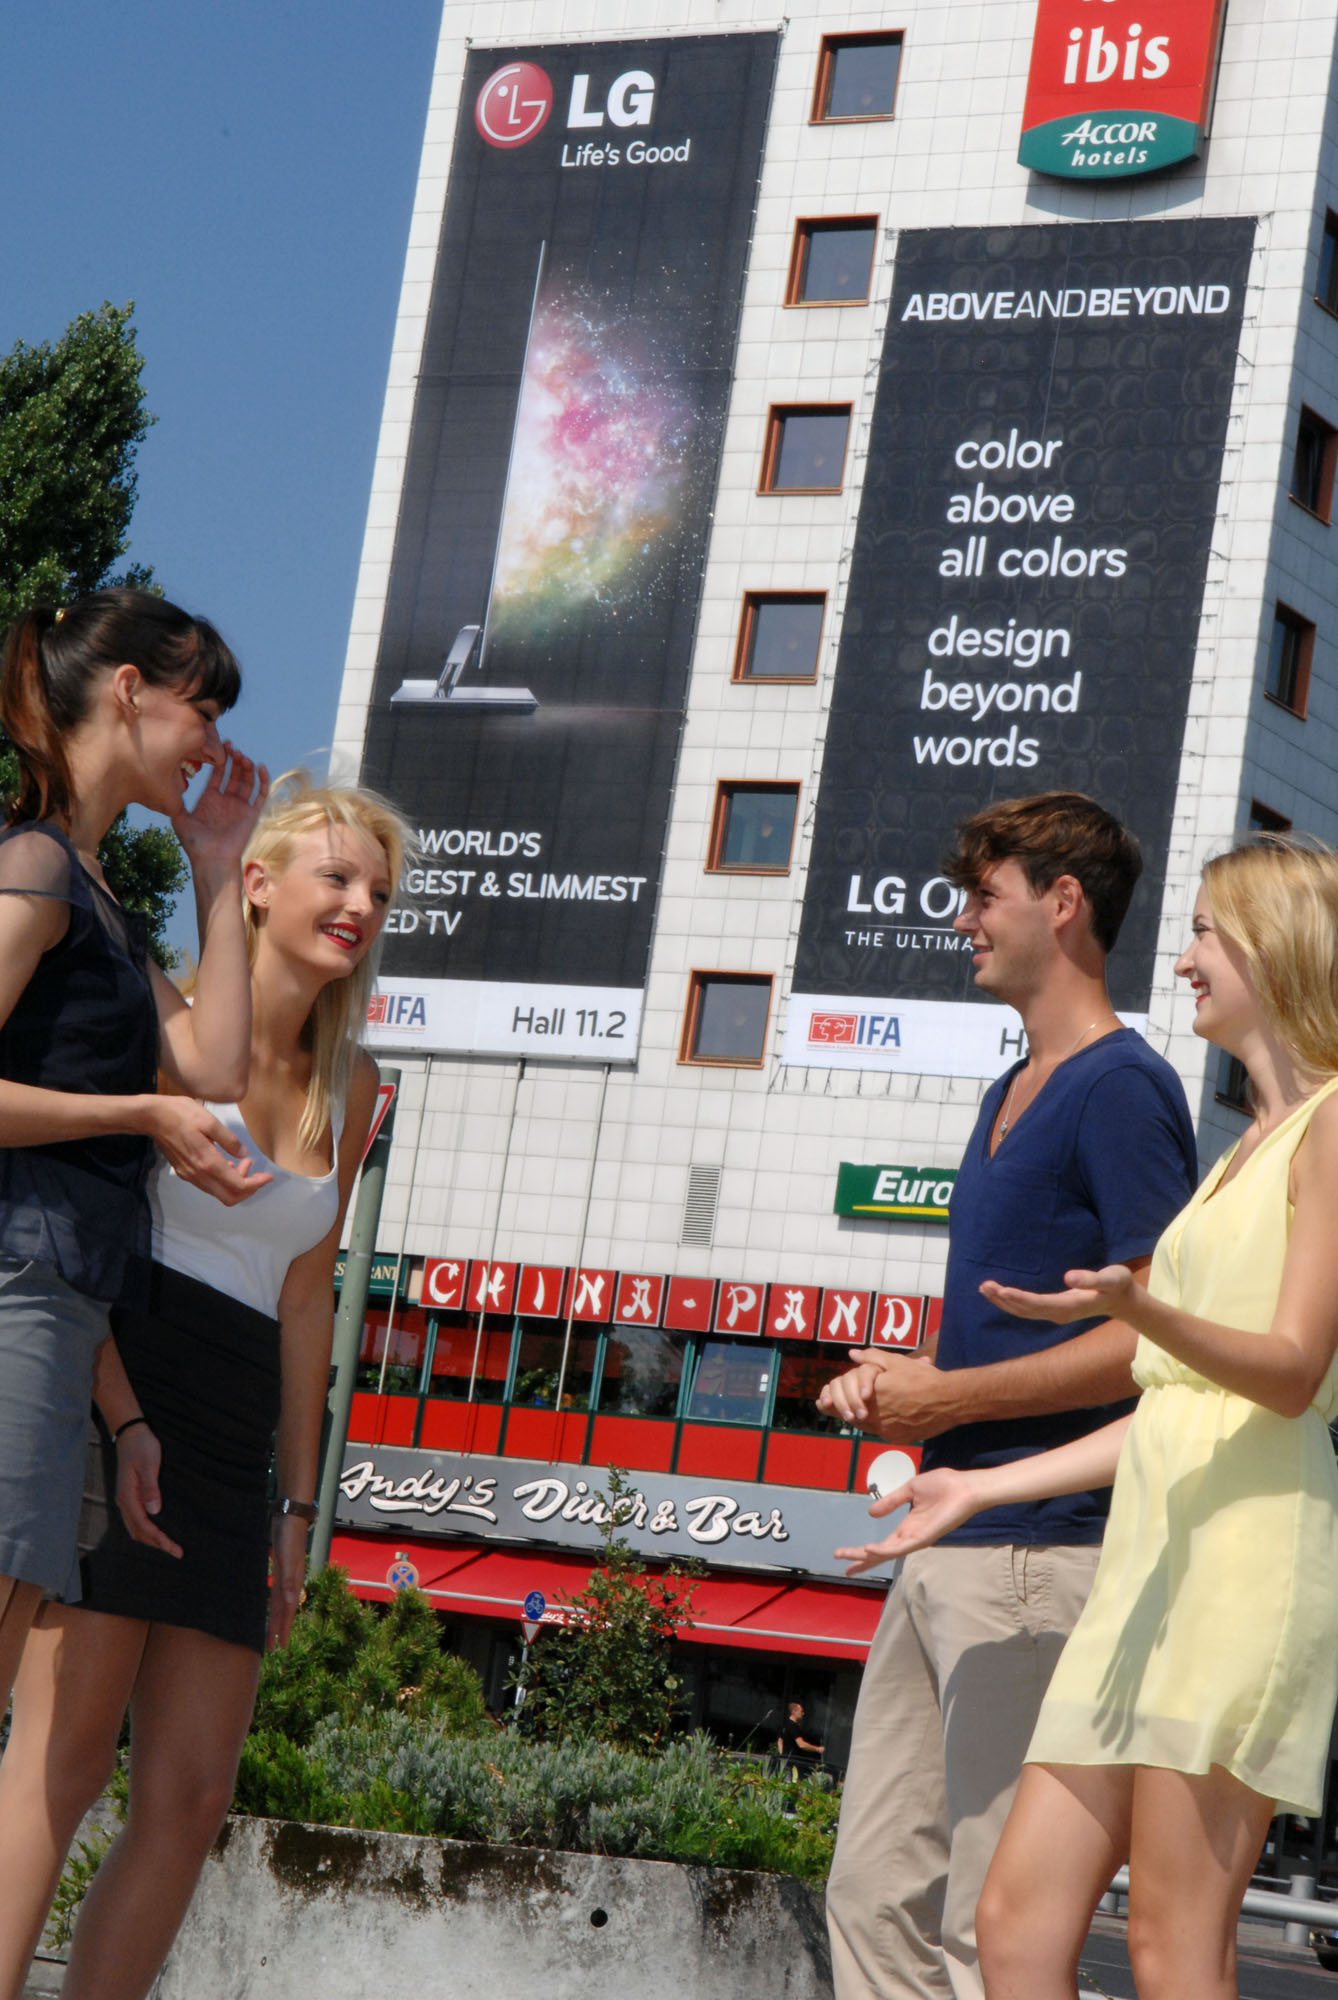 Visitors of IFA 2011 gather in front of a building, the front side of which is covered with outdoor advertisements for LG OLED TV